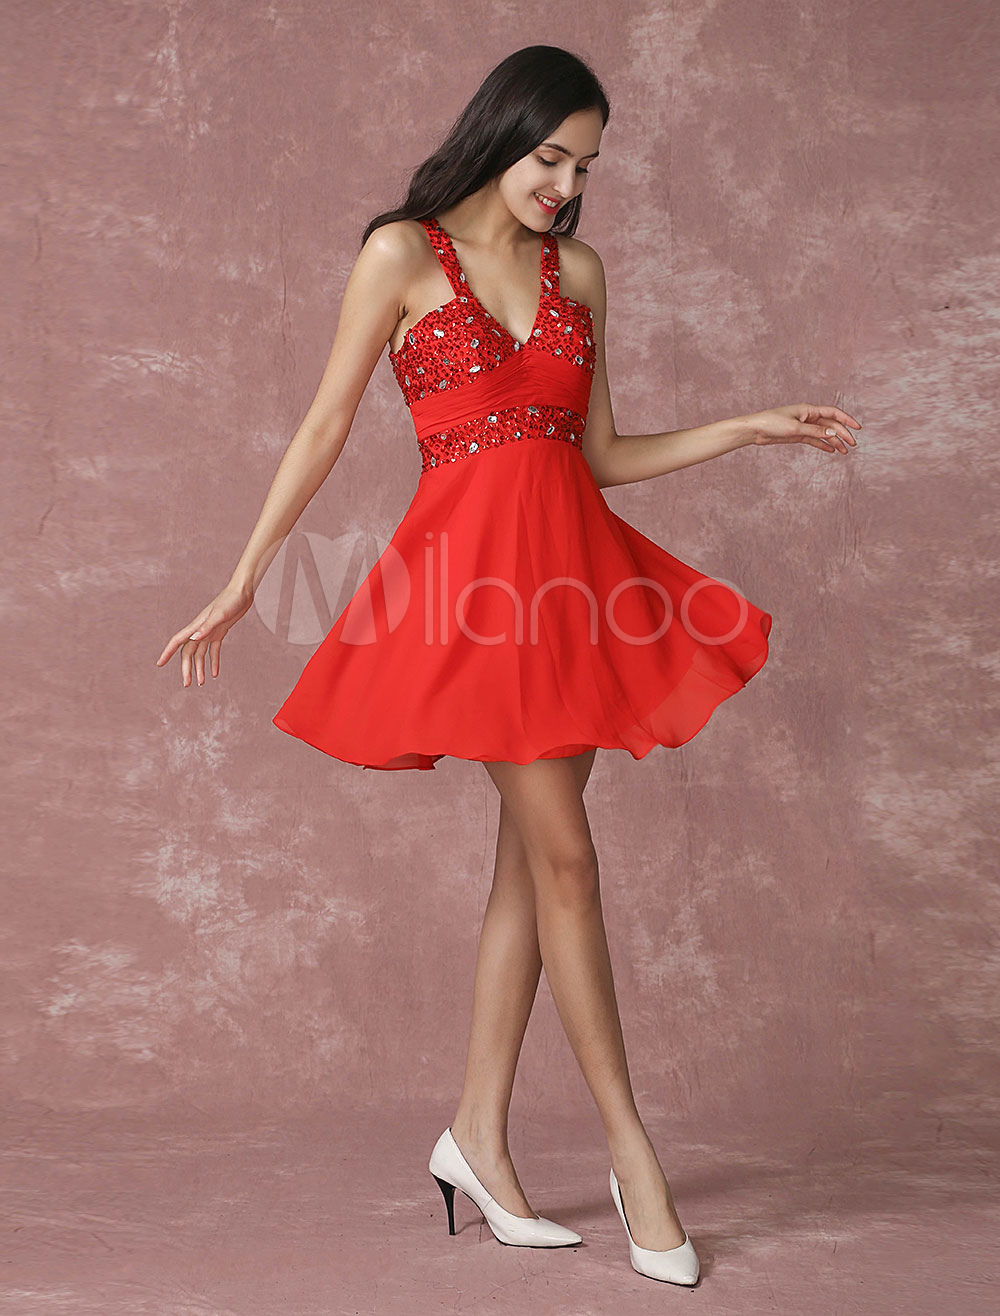 Buy Red Cocktail Dress Chiffon V Neck Beading Short Prom Dress Cross Back A Line Ruched Homecoming Dress for $115.19 in Milanoo store